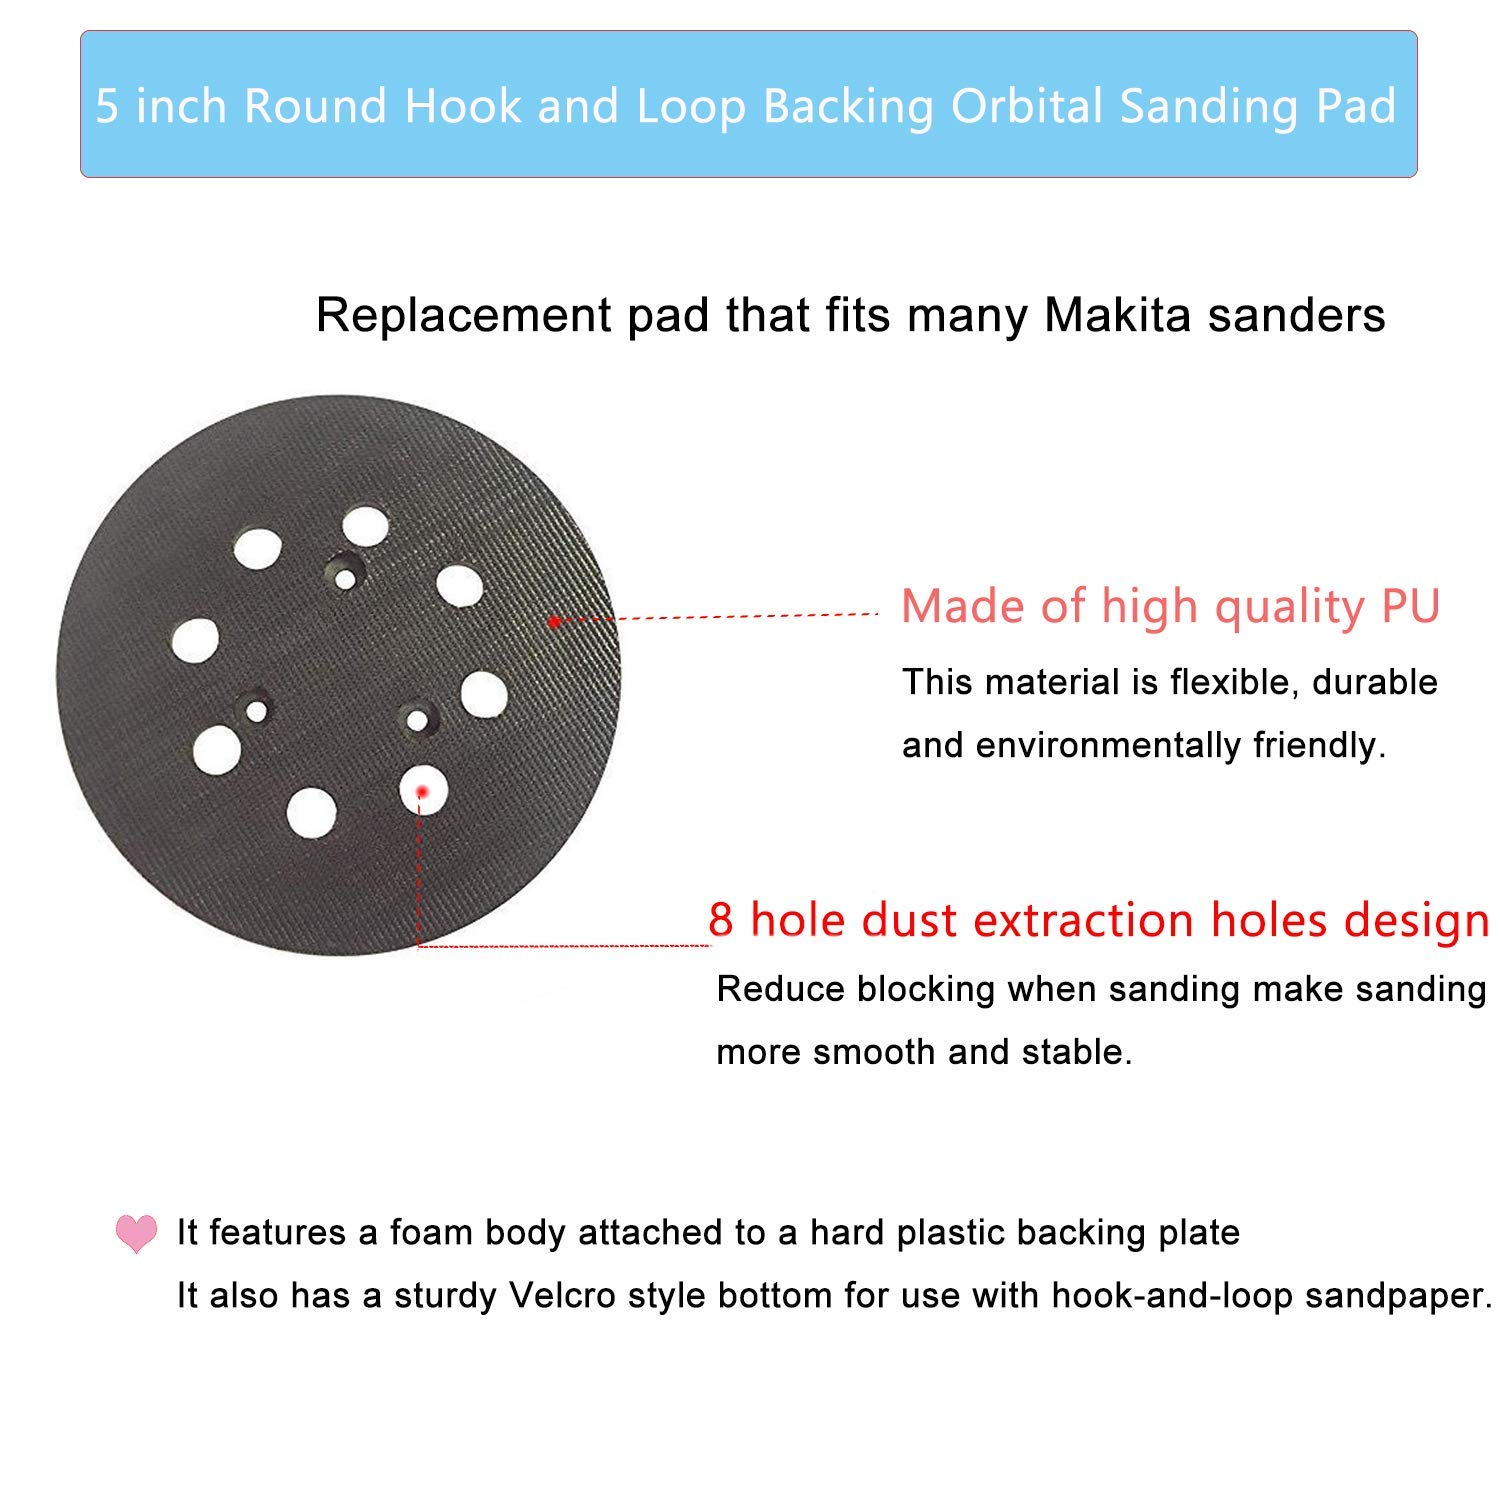 743081-8 Sanding Base and Pad for Makita Sander BO5030 BO5010 5 Inch 8 Hole Sander Hook and Loop Pad Replaces Makita 743051-7 Hitachi 324-209